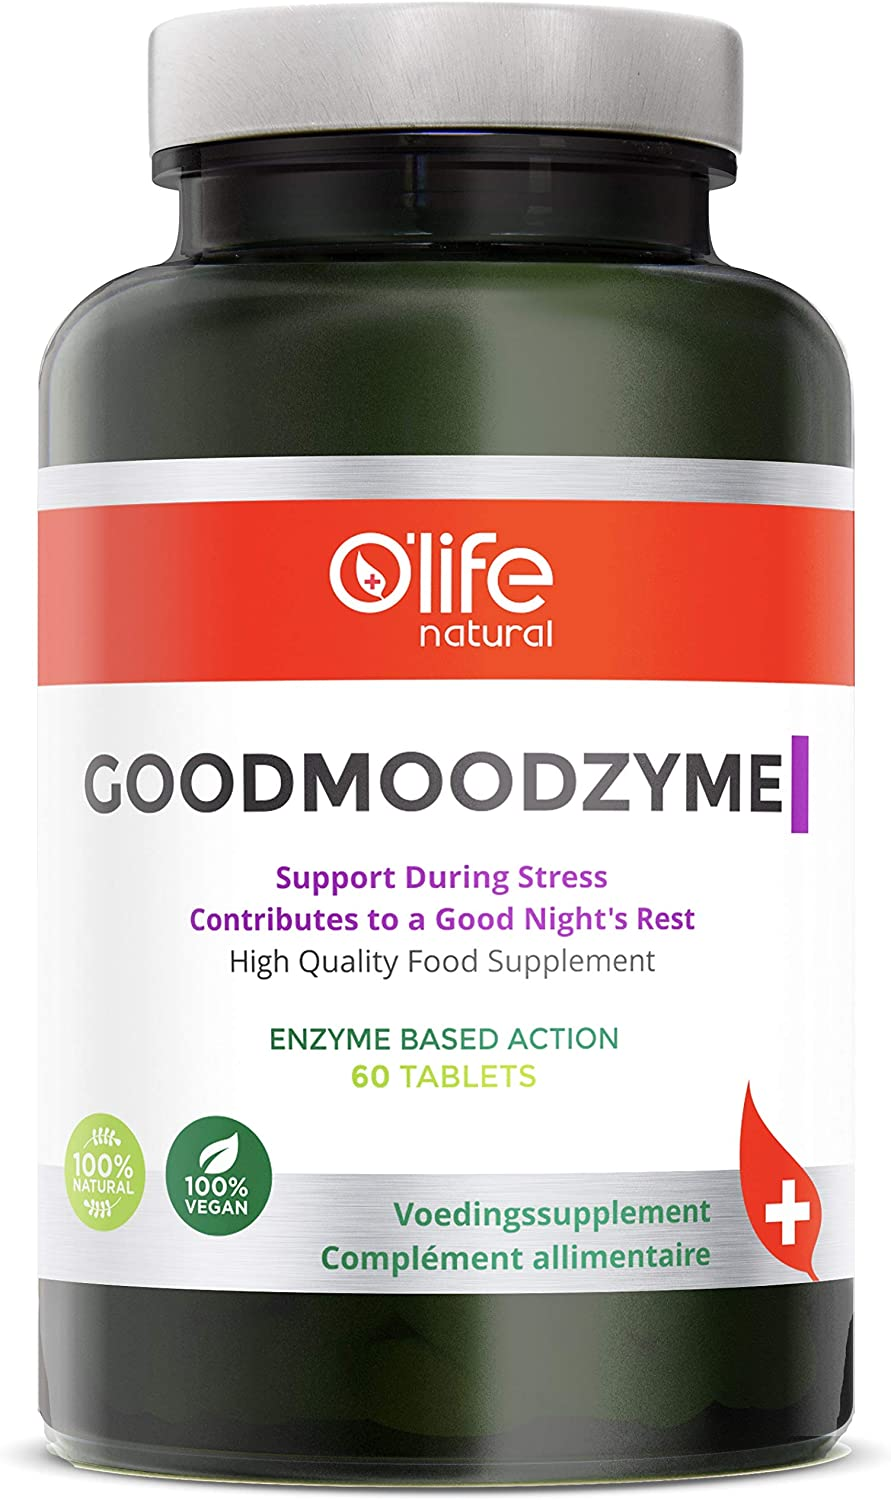 O Life Natural s GOODMOODZYME – Advanced Formula with Ashwagandha, L-Theanine, Ginkgo Biloba Digestive enzymes for Brain Power, Focus, Memory Clarity, Stress Anxiety Insomnia Relief